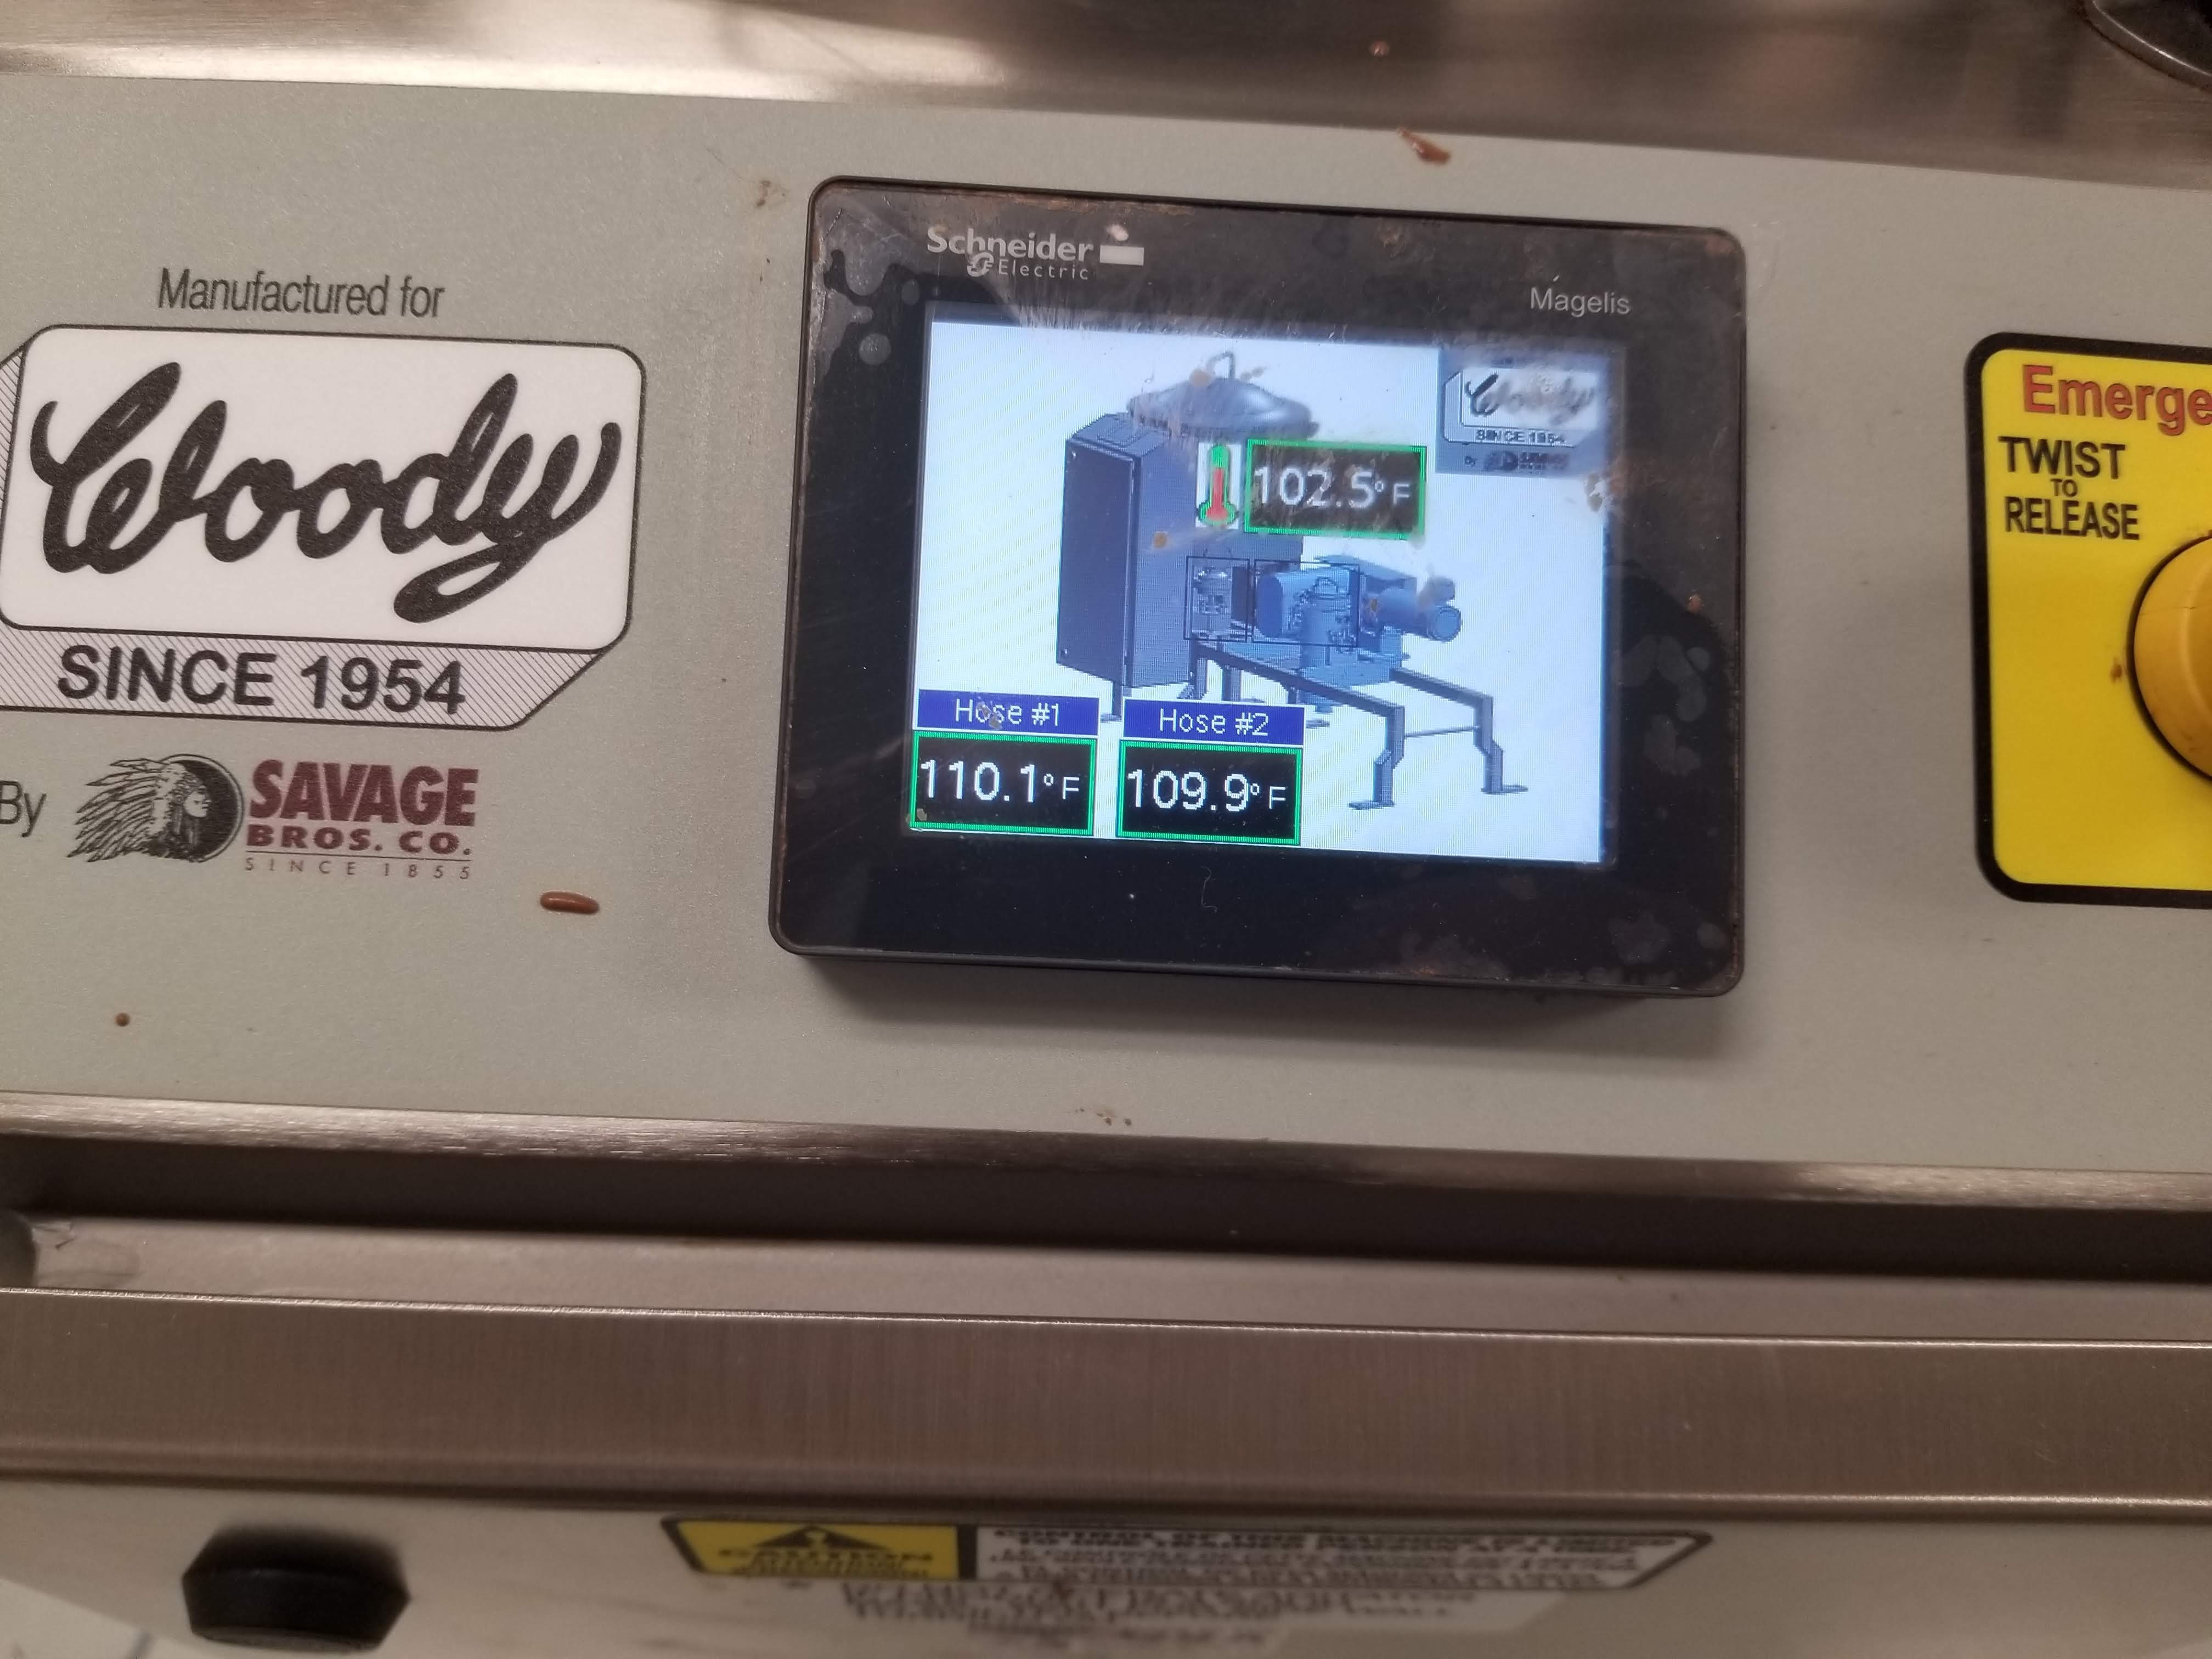 Lot 23 - Savage/Woody 125 lb Stainless Steel Chocolate Melter with Touchscreen controls -Jacketed and